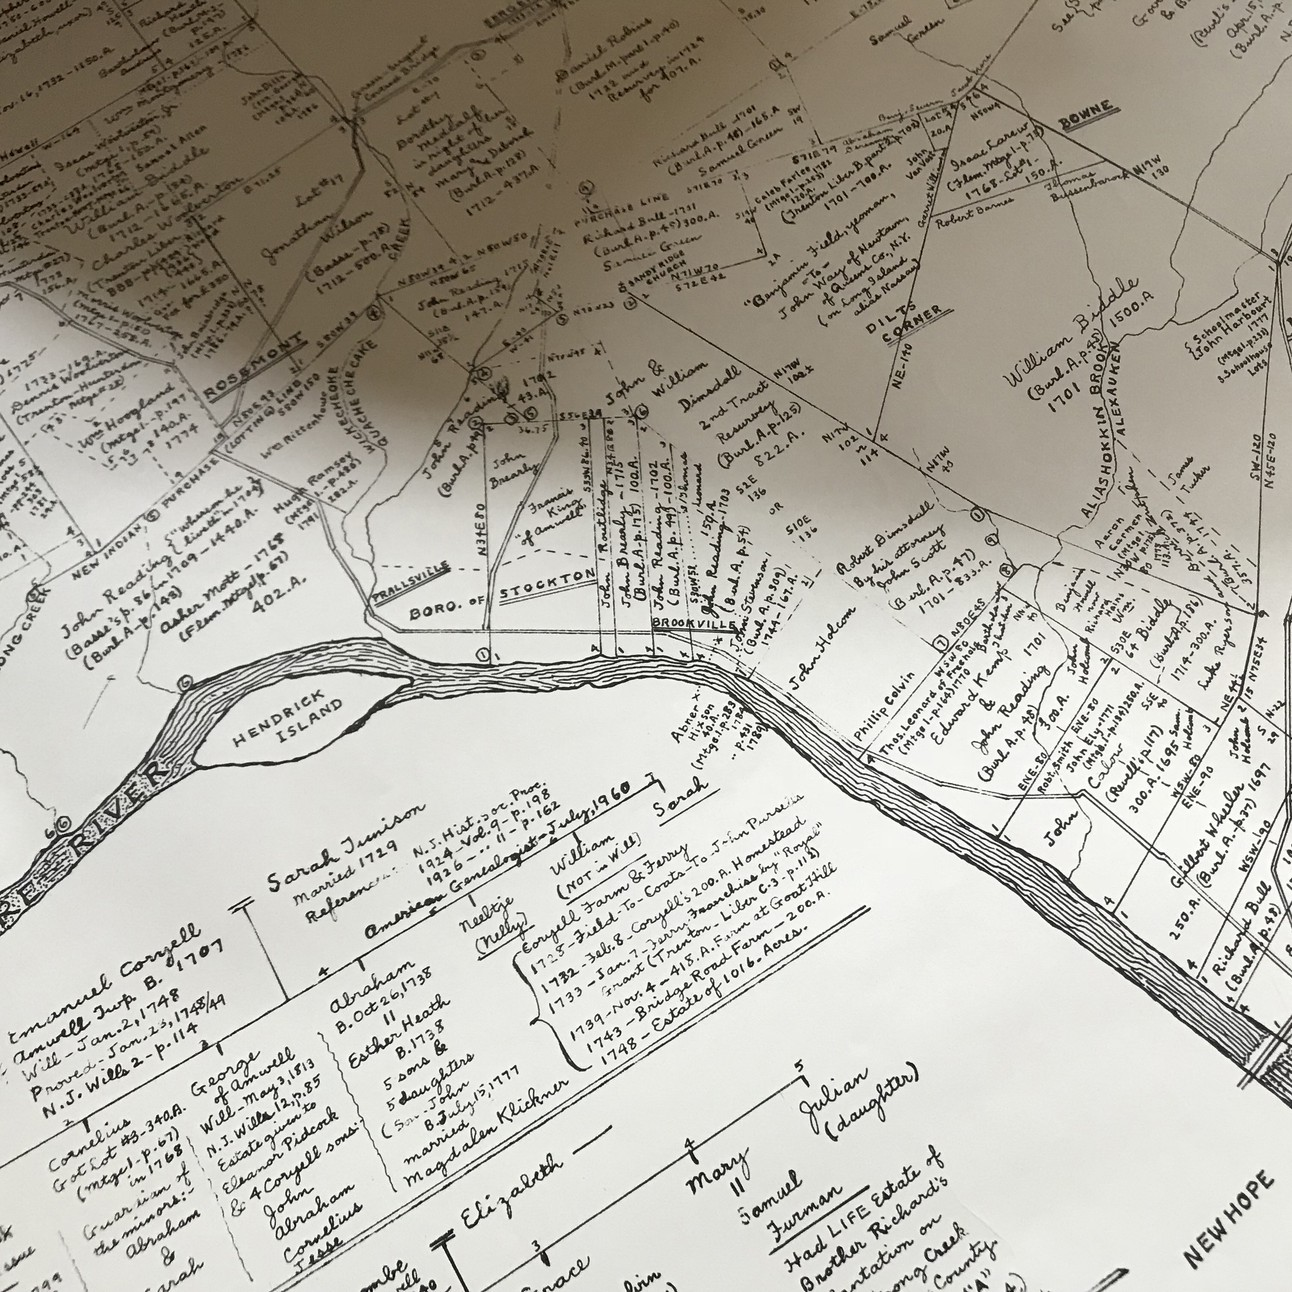 Hunterdon County NJ Maps—1688-1795—8 Sheets on salem county nj map, hunterdon map with cities, south bound brook nj map, musconetcong river nj map, delran township nj map, union county map, bergen county nj map, glen gardner nj map, evesham township nj map, stafford county nj map, new jersey central nj town map, new jersey hudson county nj map, morris county nj map, palisades interstate parkway nj map, sullivan county nj map, suffolk county nj map, greenwich township nj map, hunterdon co map, annandale nj map, west windsor township nj map,